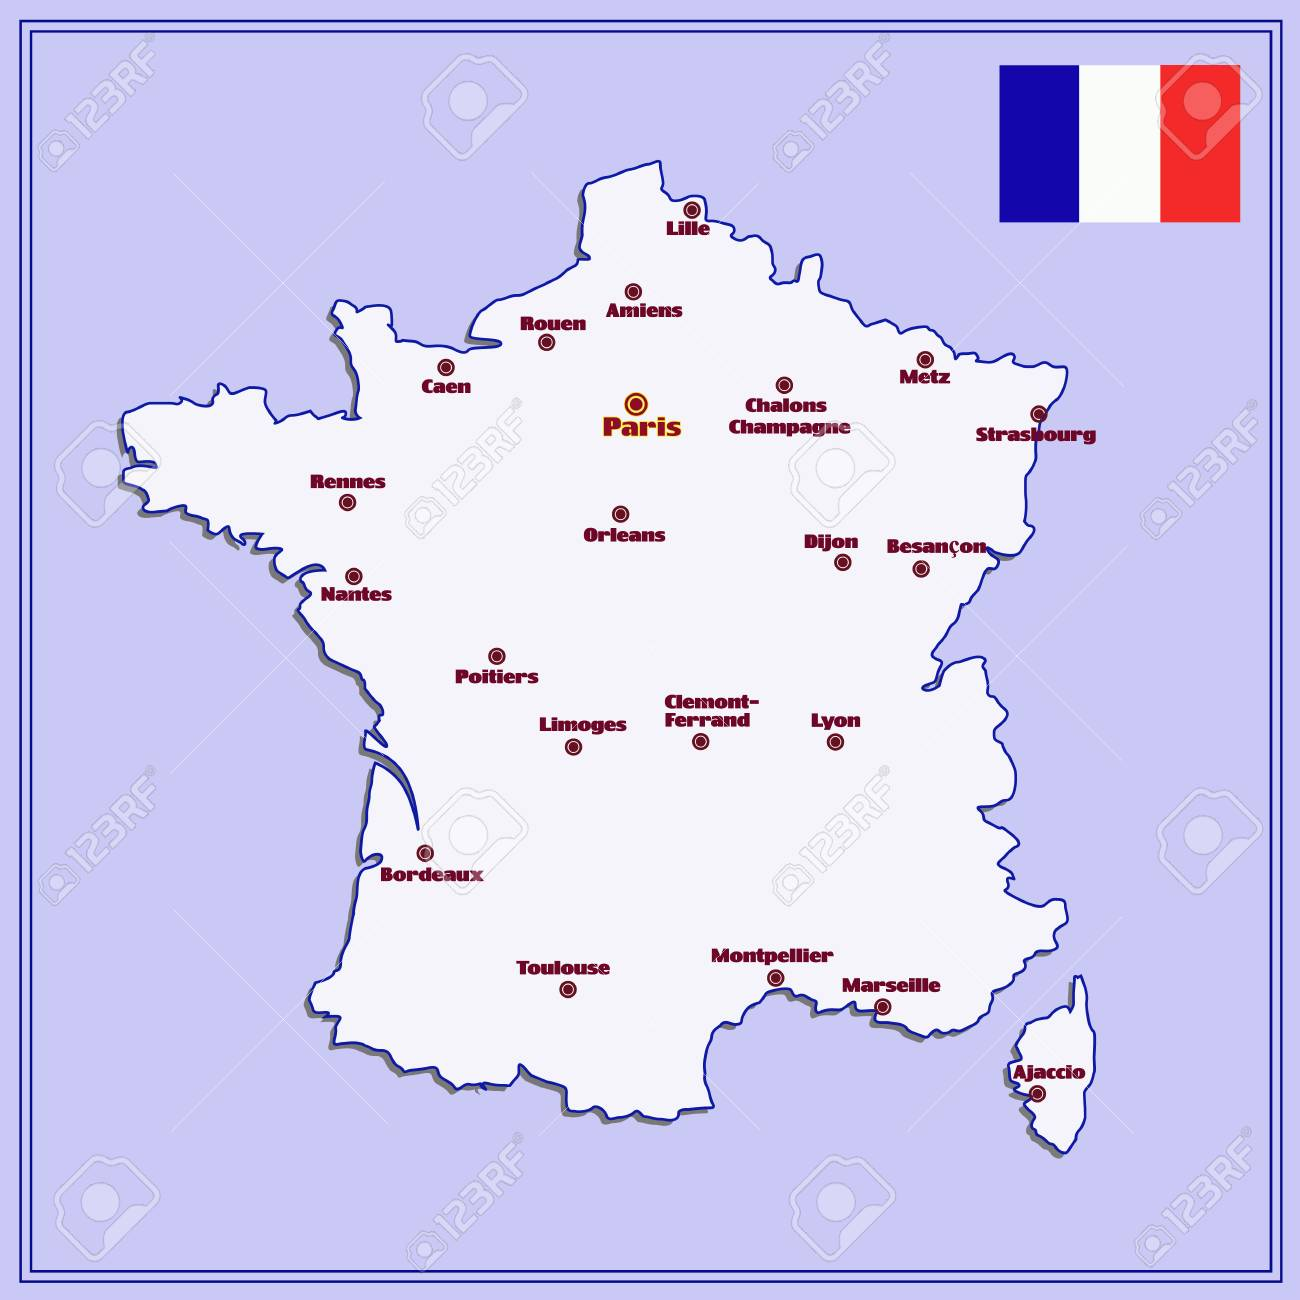 Cities Of France Map.Map Of France With Big Cities Stock Photo Picture And Royalty Free